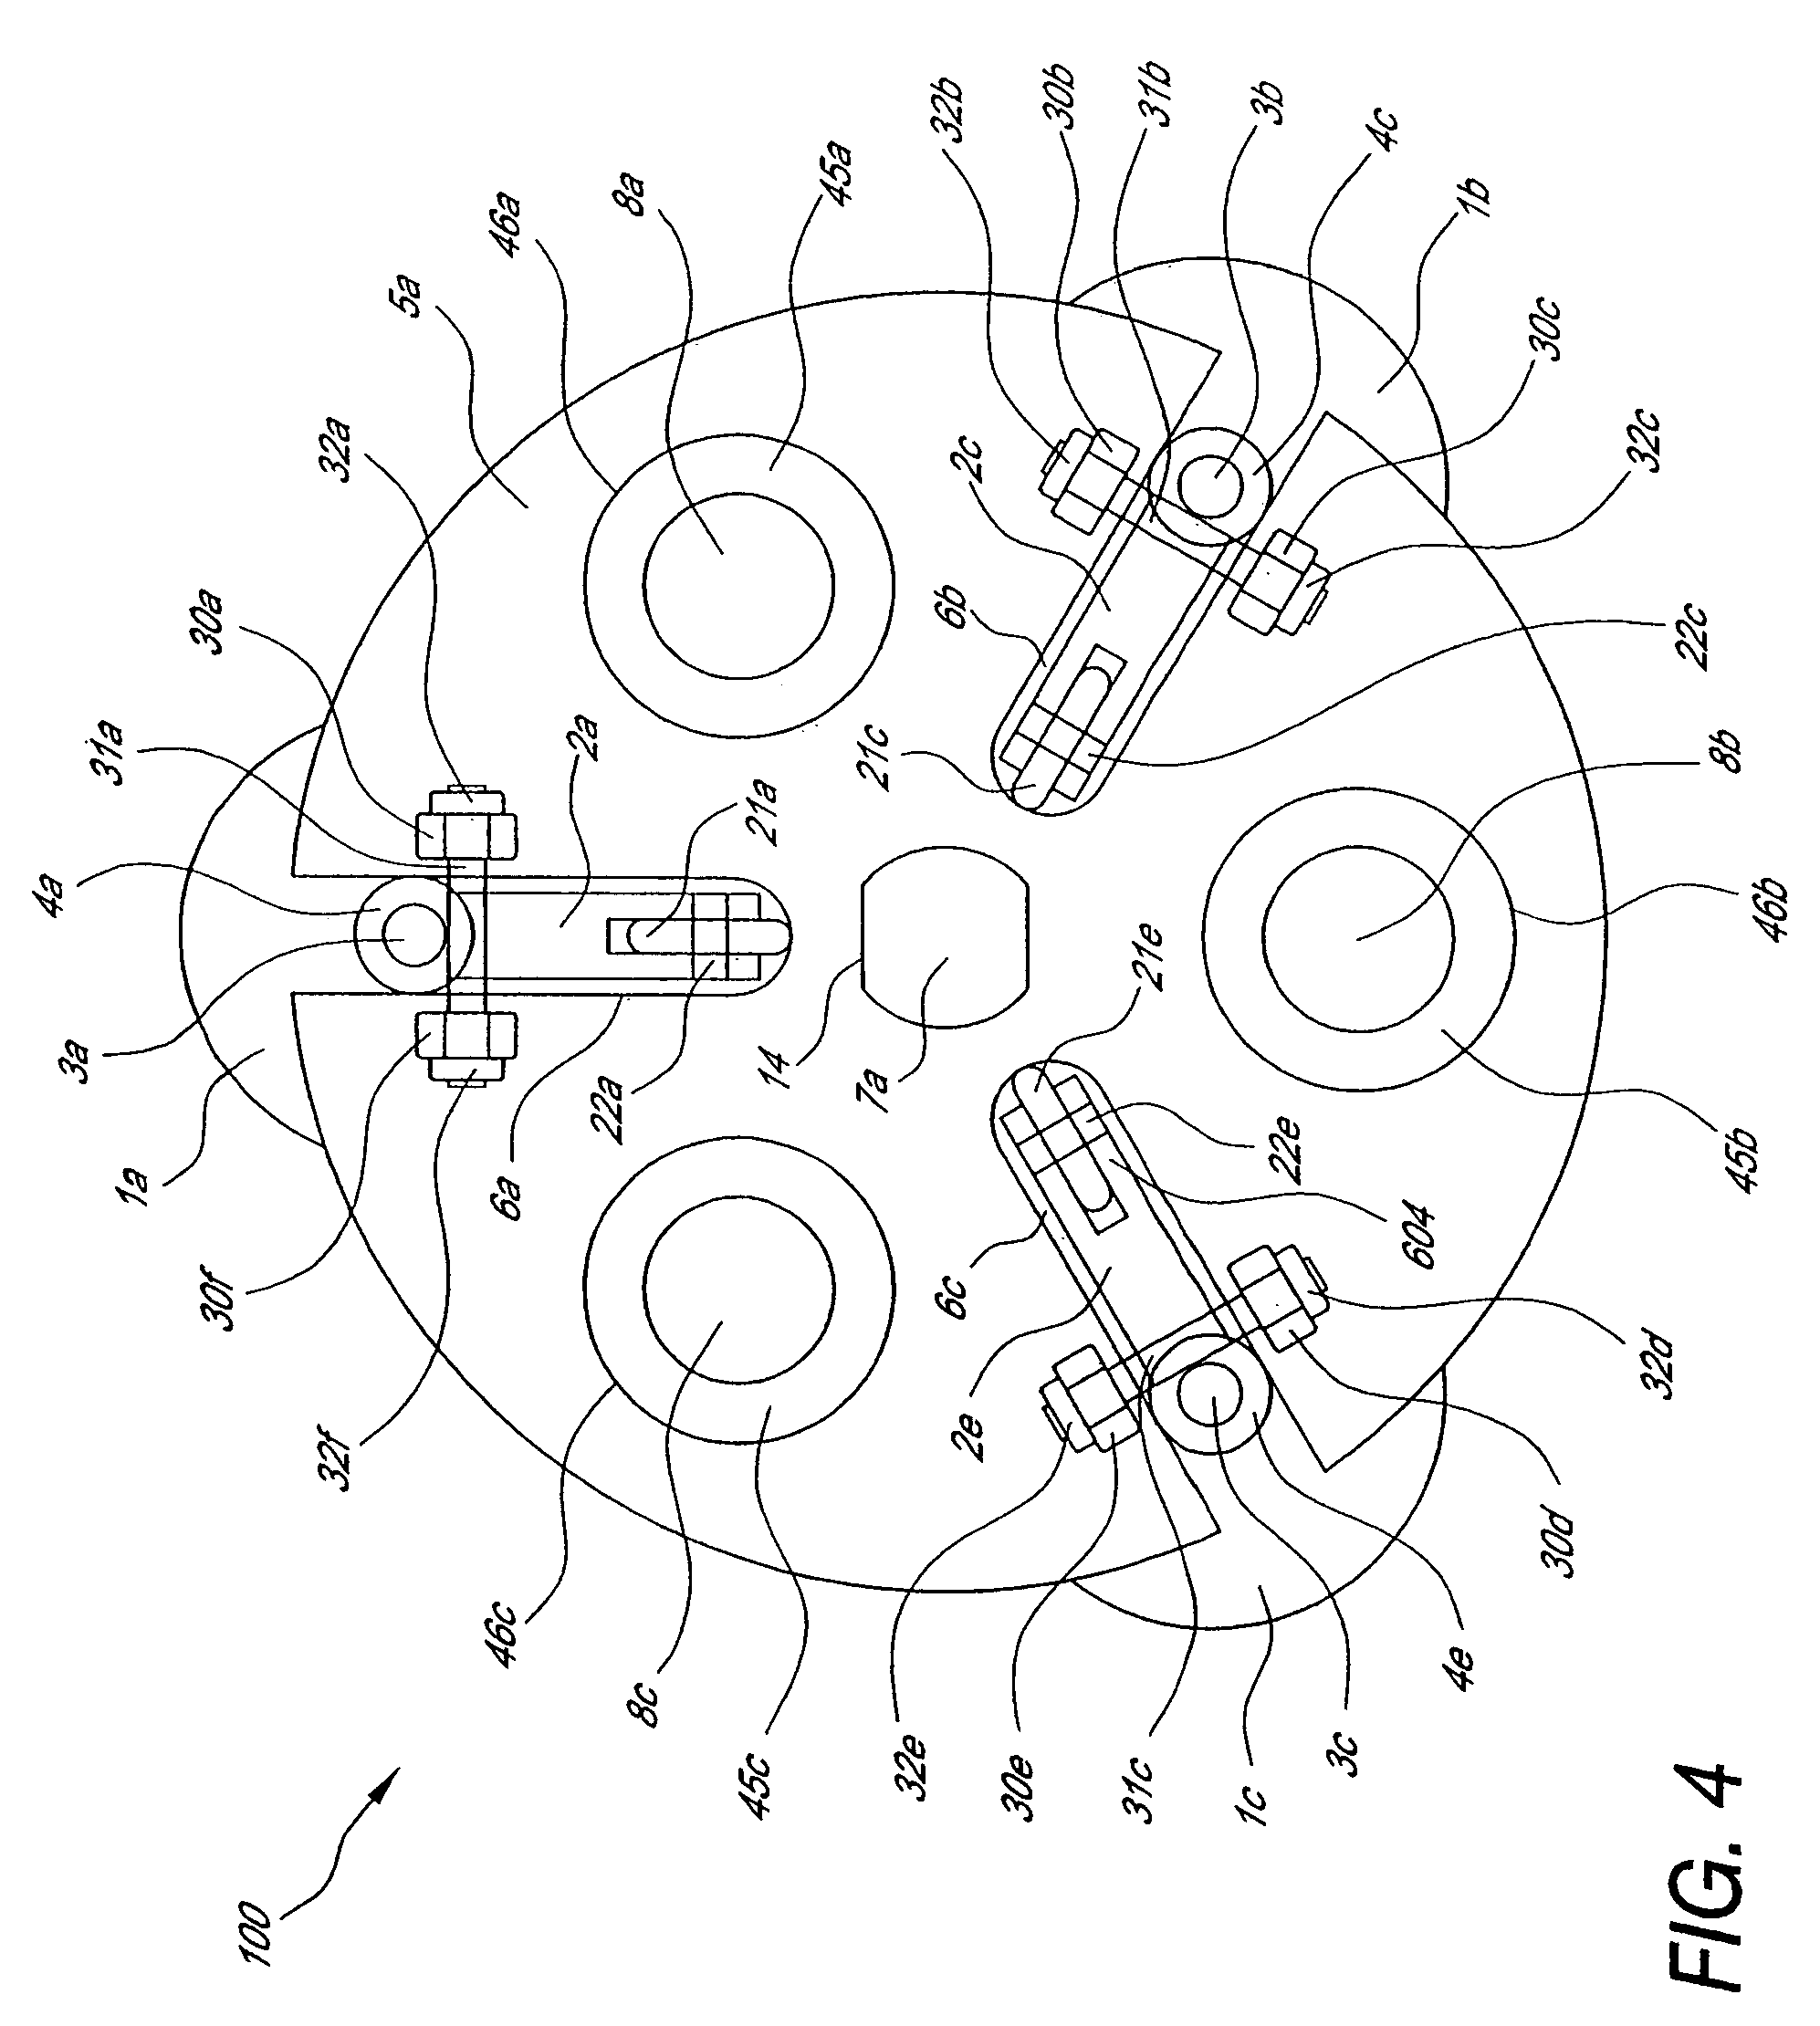 US7074154 as well Wedding Photography Workflow in addition File Pulley  PSF likewise Clock likewise Propeller Shaft Adapter Nuts Cw Ccw. on simple gear example